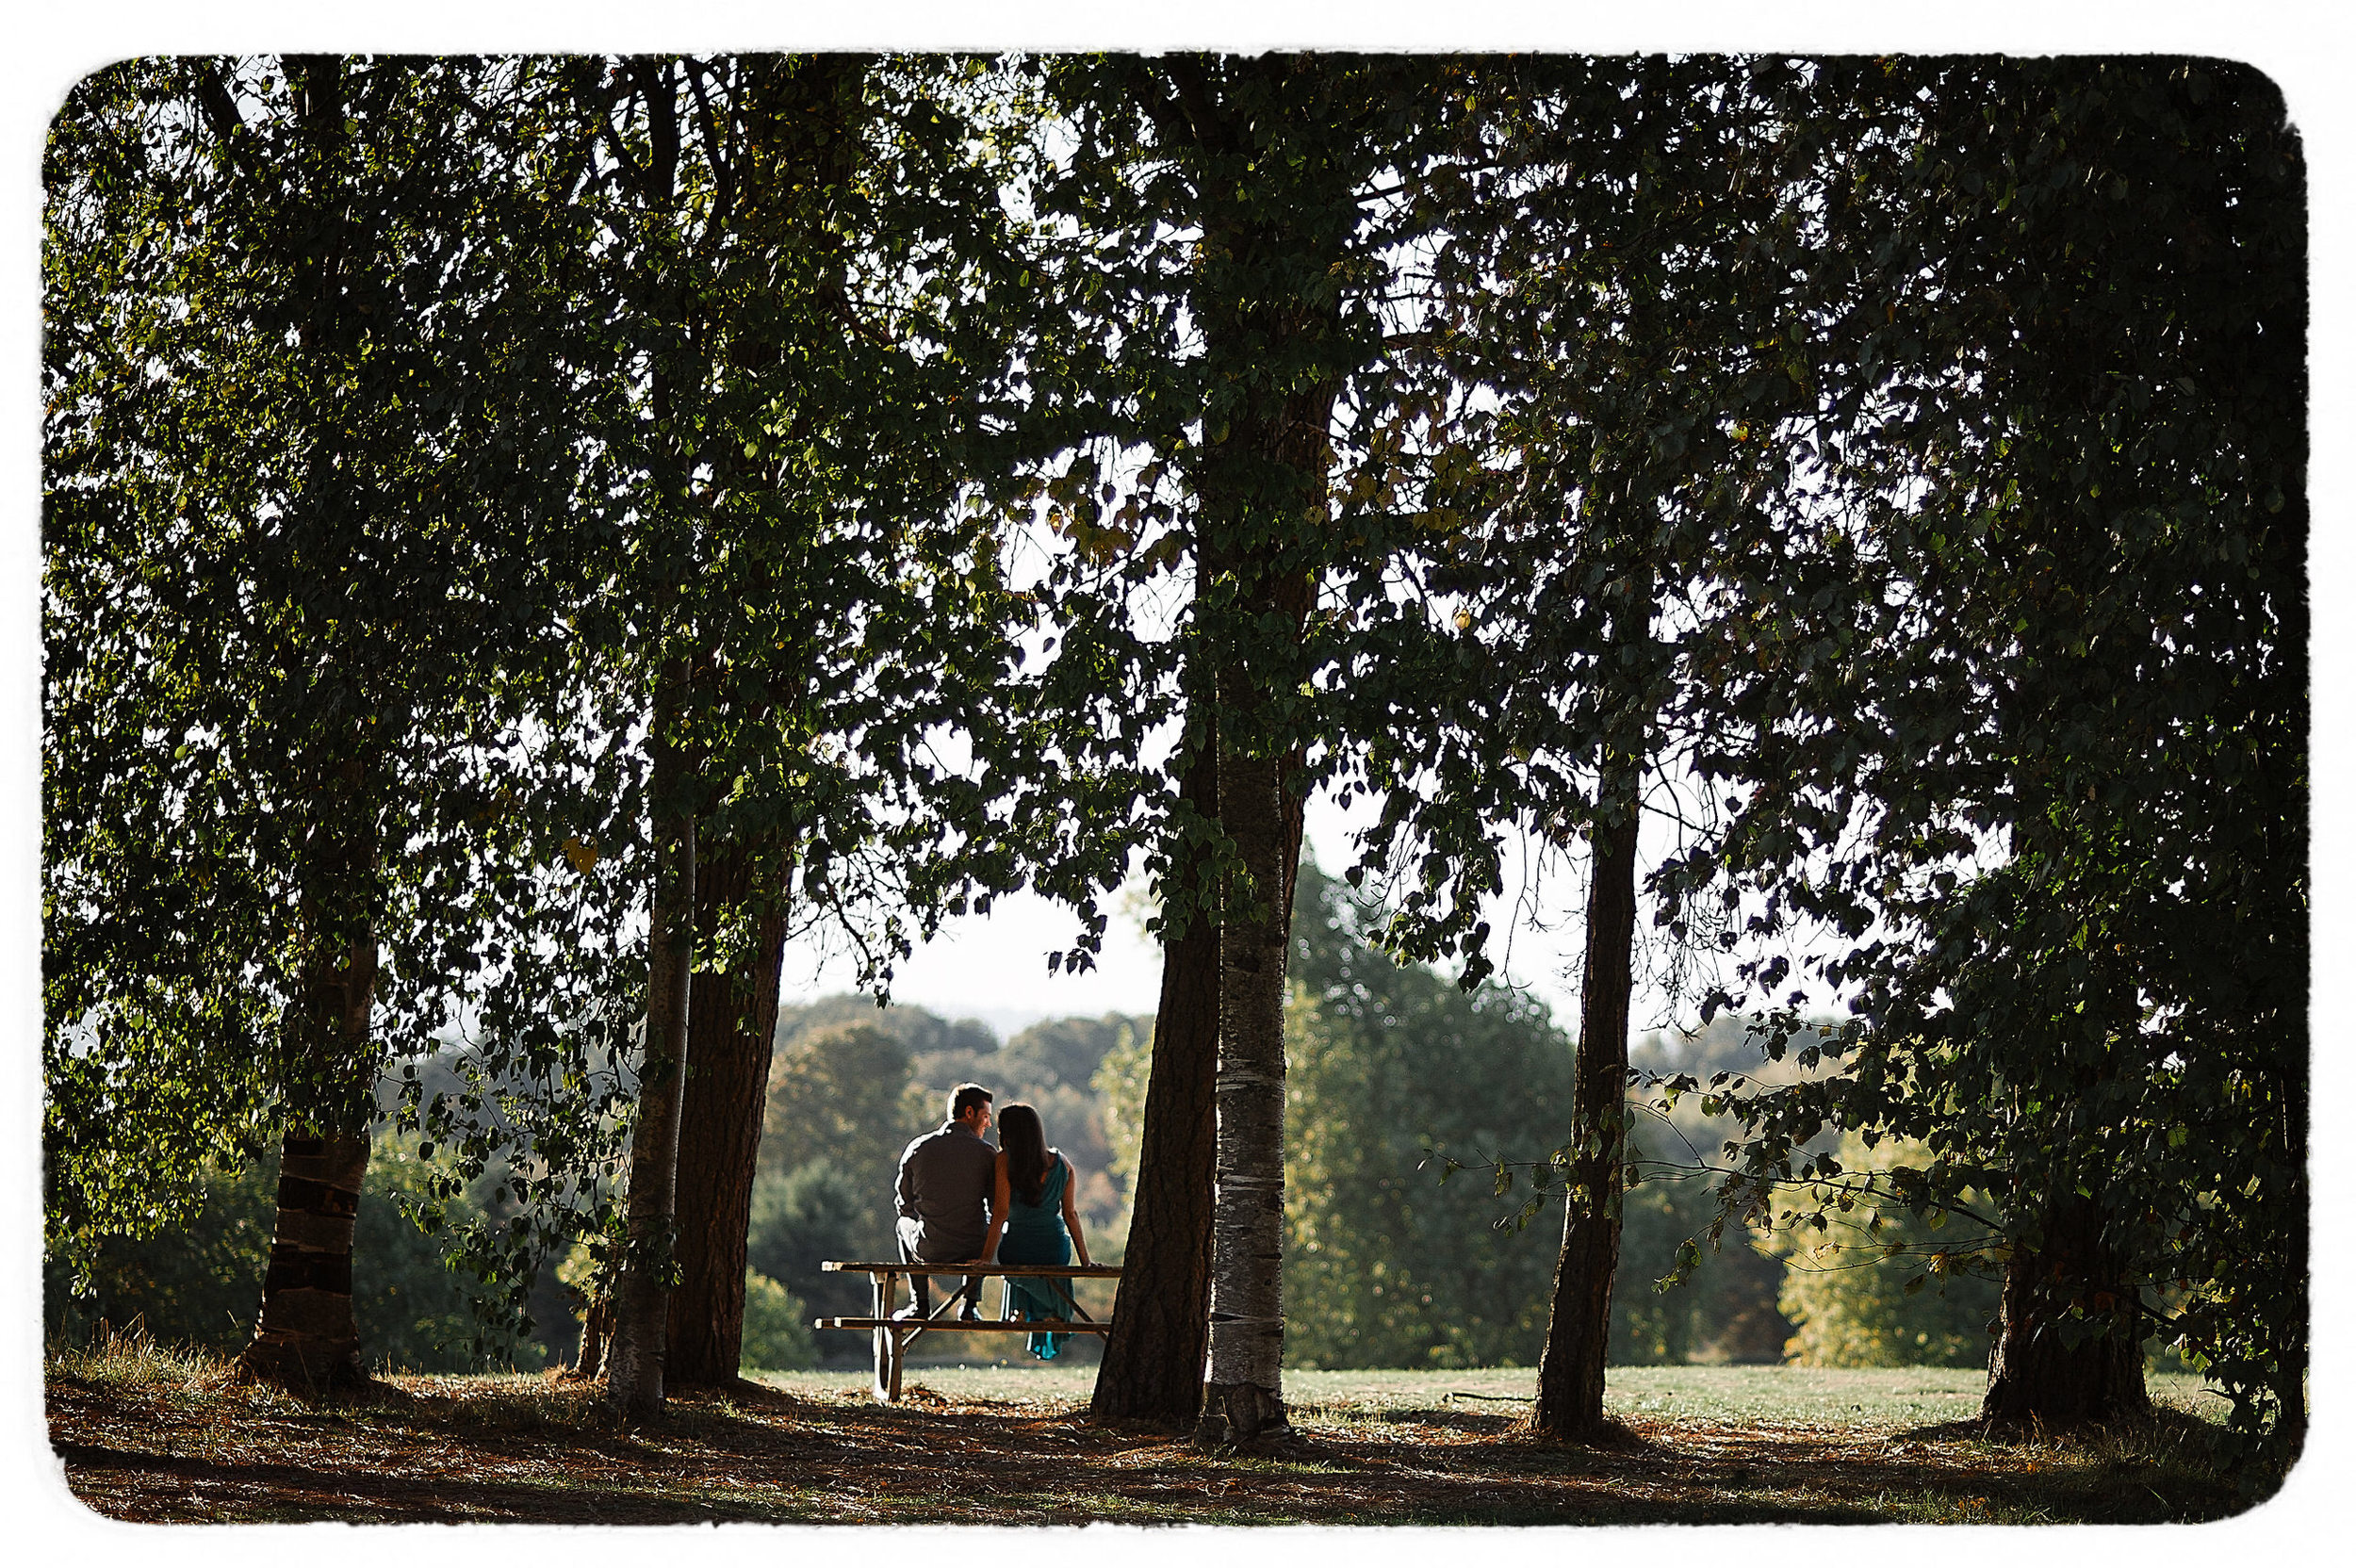 Kelly&Mike-EngagementSession-OriginalCollection-56Film.jpg